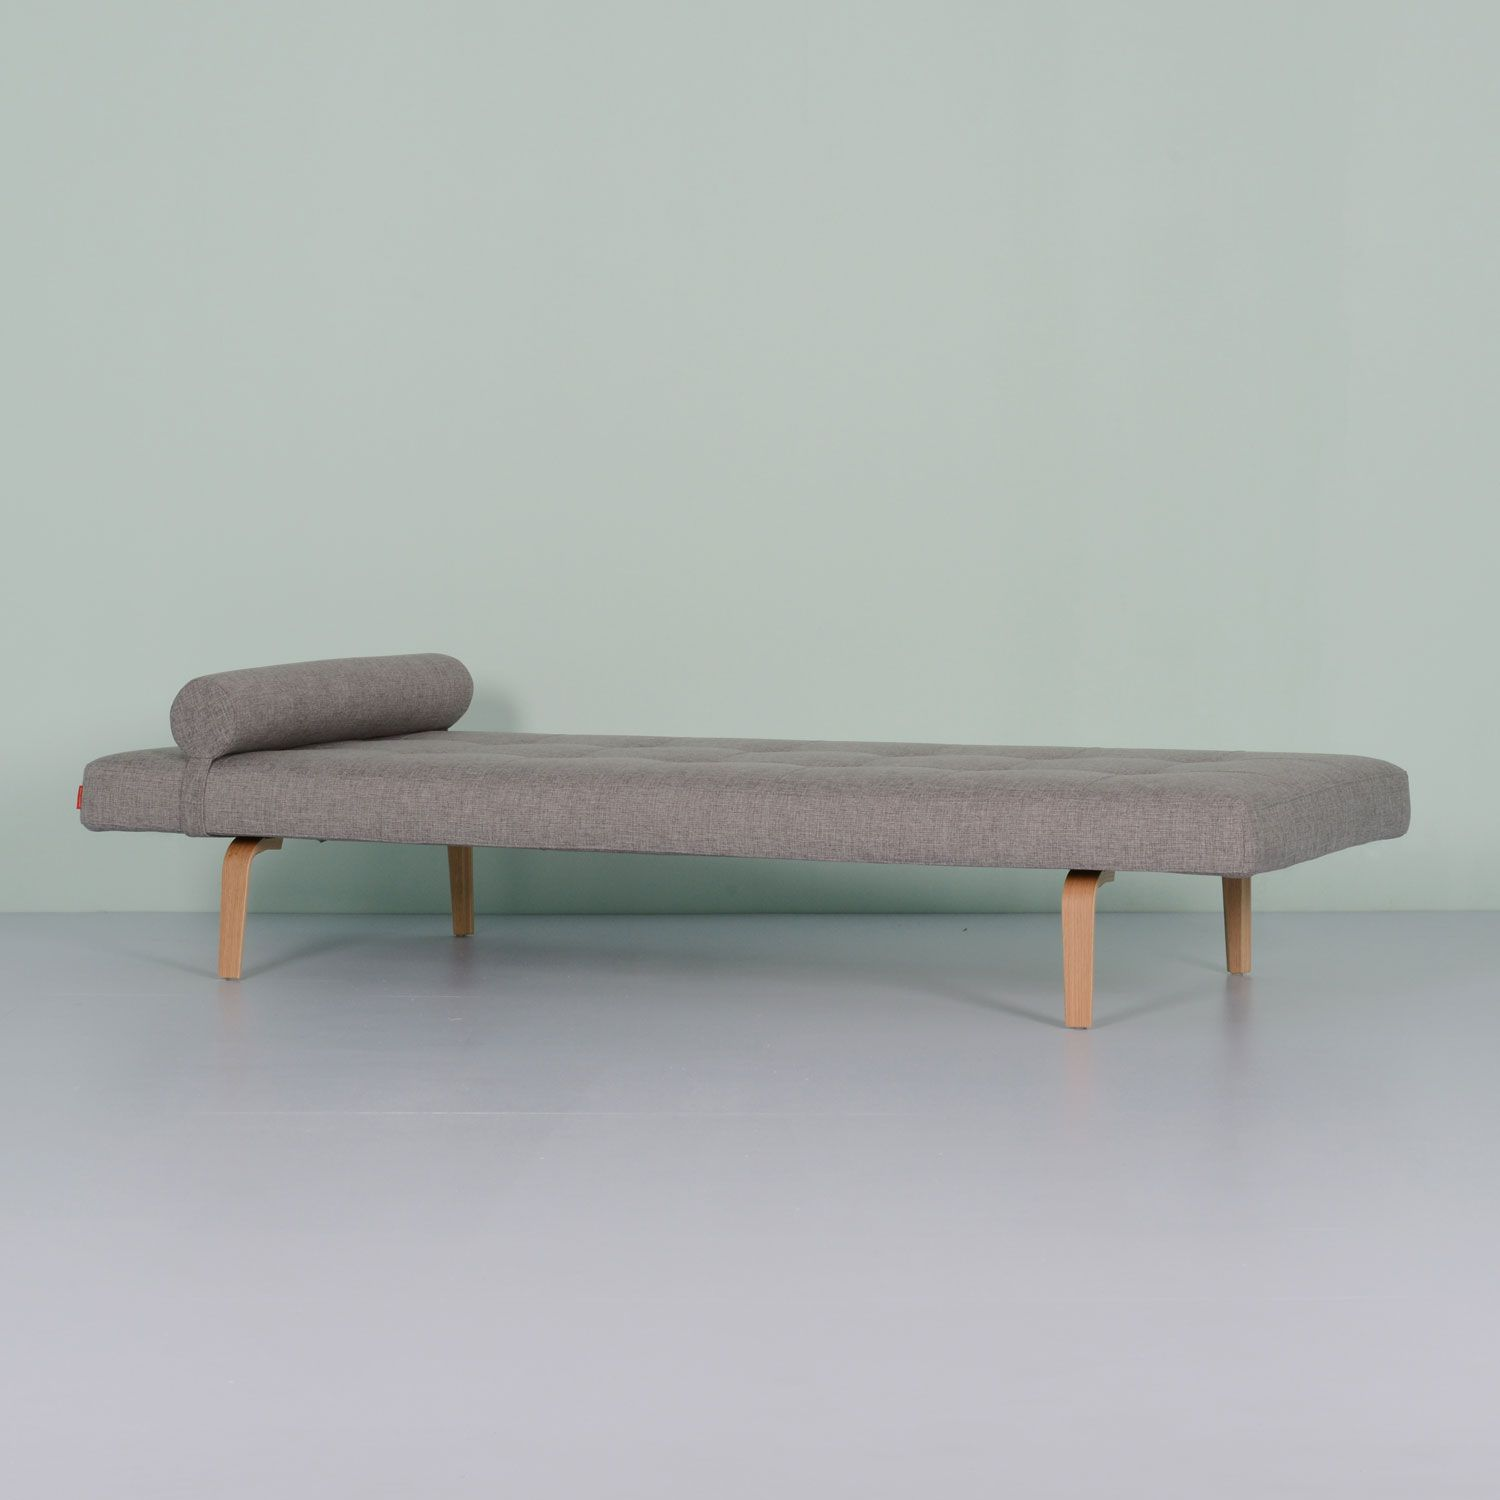 Ambrose Pause Day Bed By Per Weiss Sofabeds Sofabeds